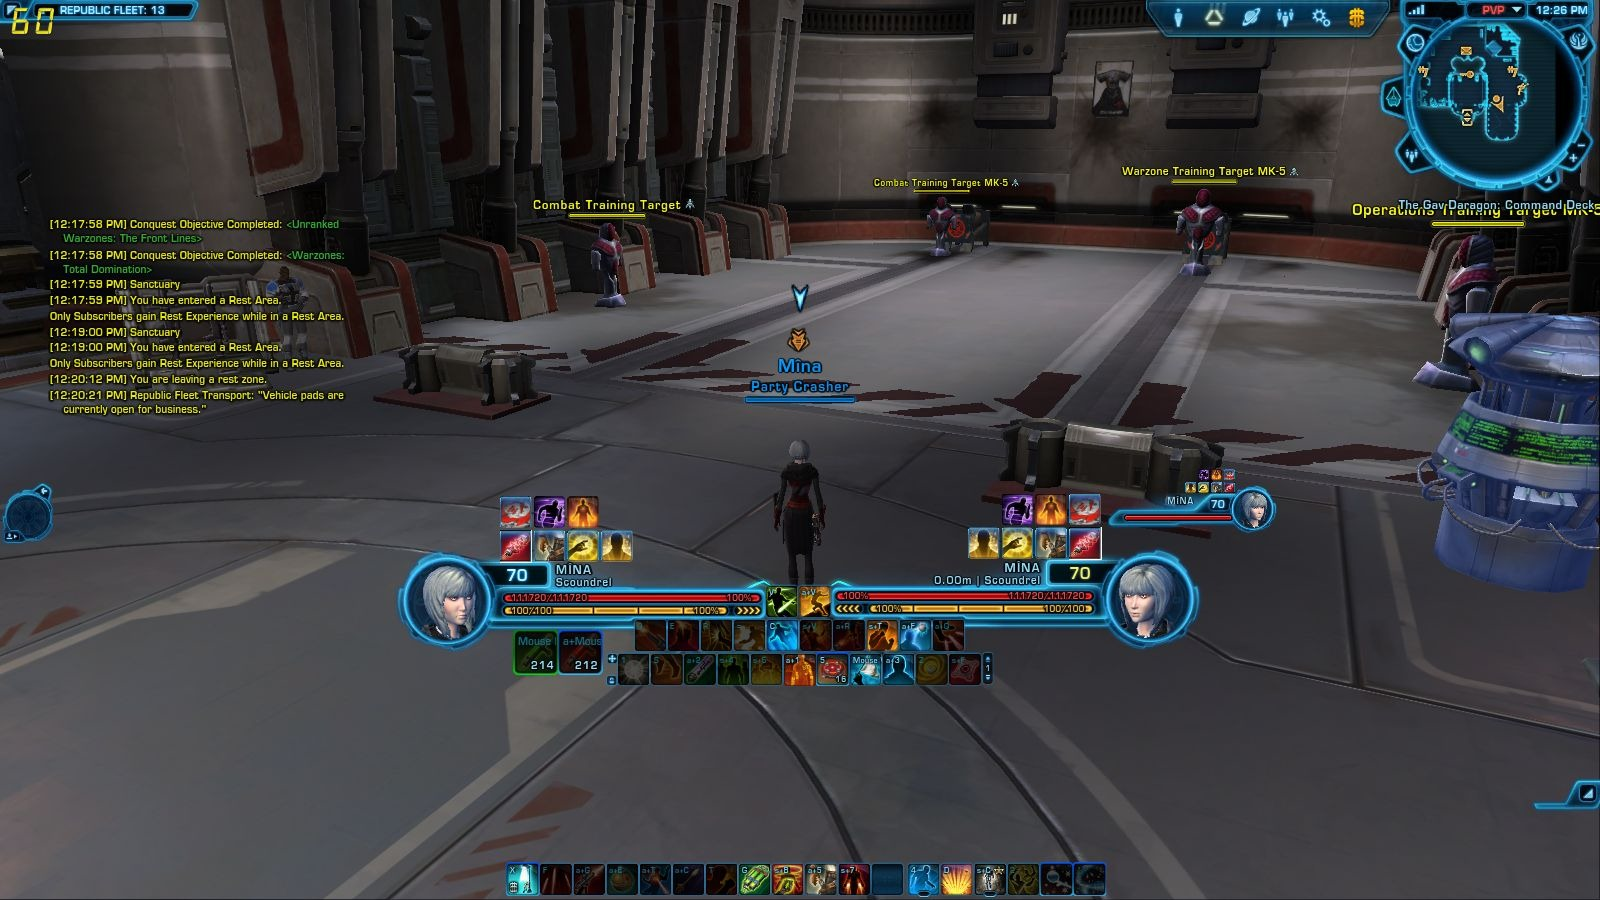 swtor-5.0-scrapper-scoundrel-pvp-guide-2